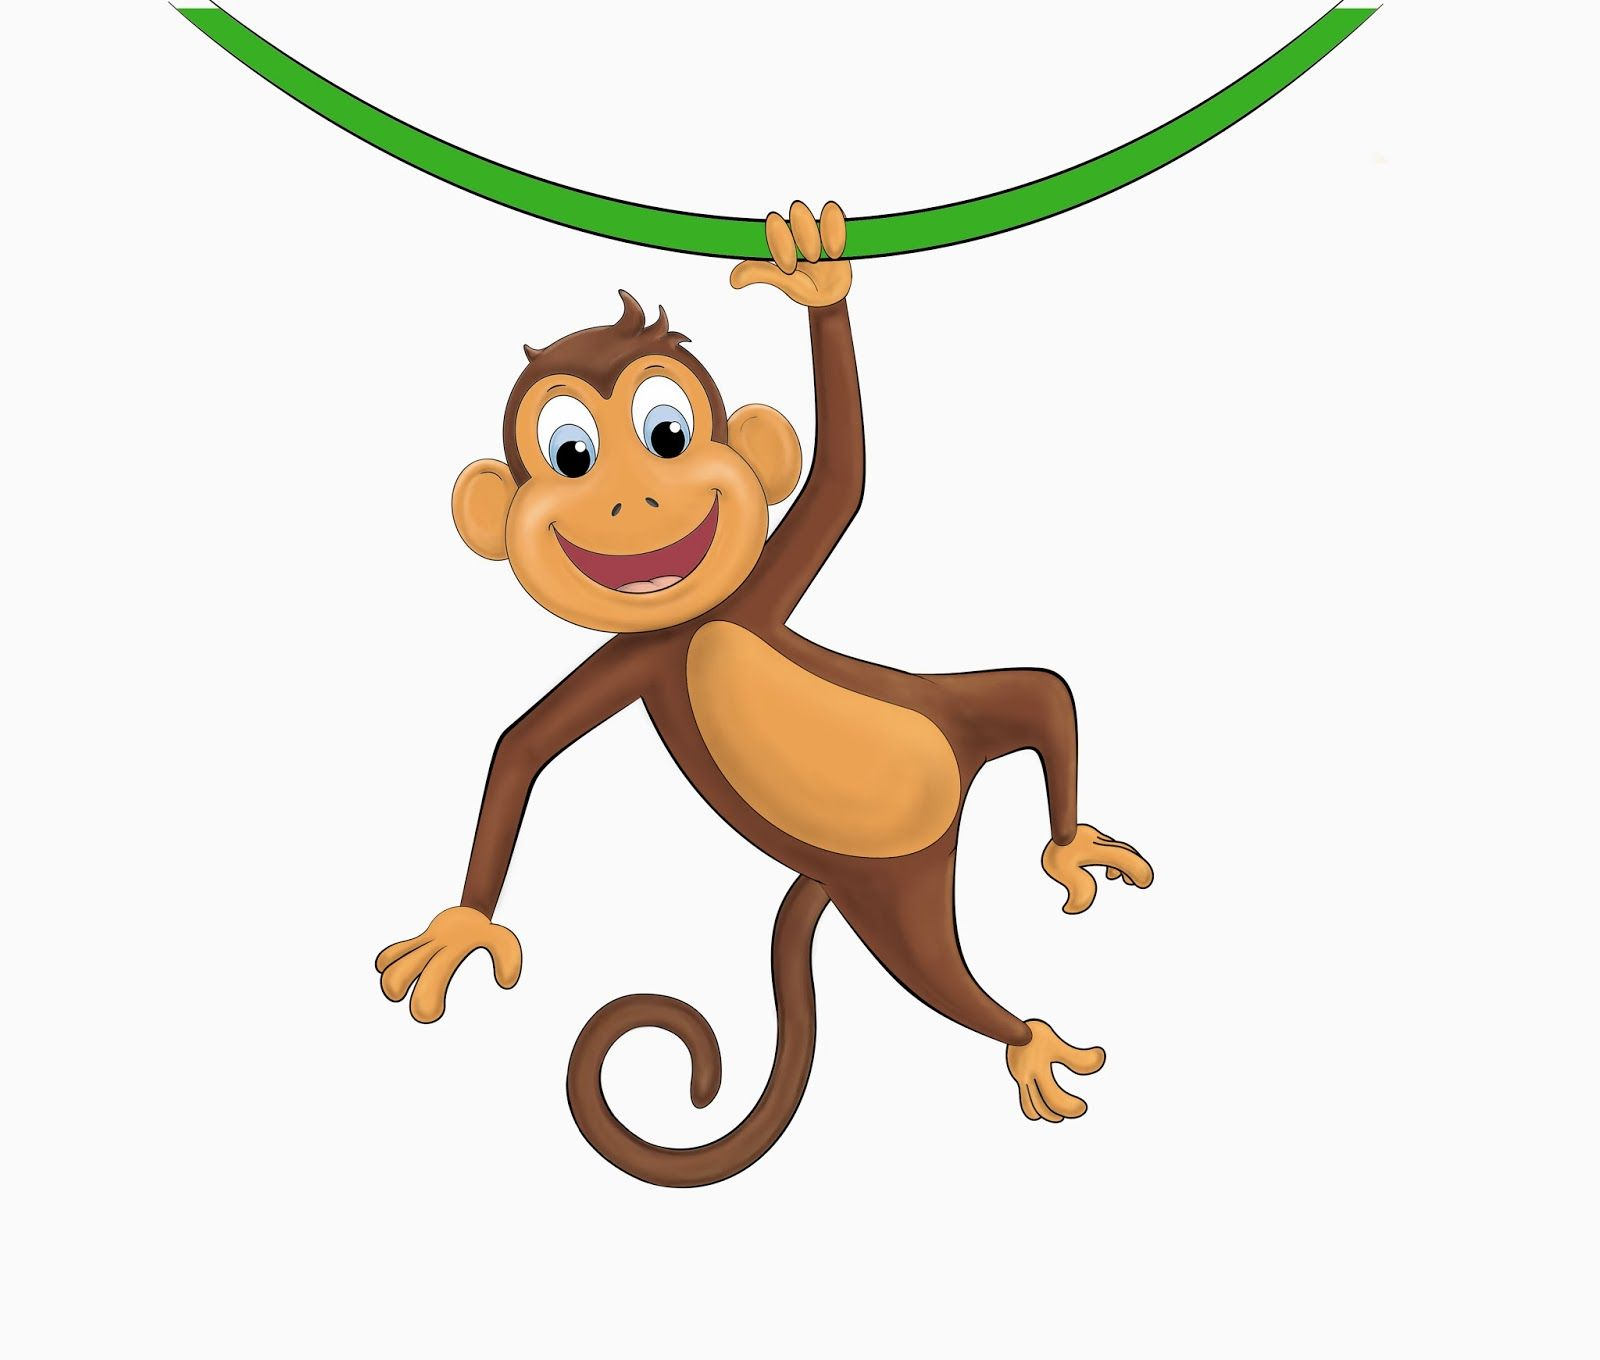 Hanging Monkey Drawing at GetDrawings.com | Free for personal use ... for realistic monkey clipart  75tgx